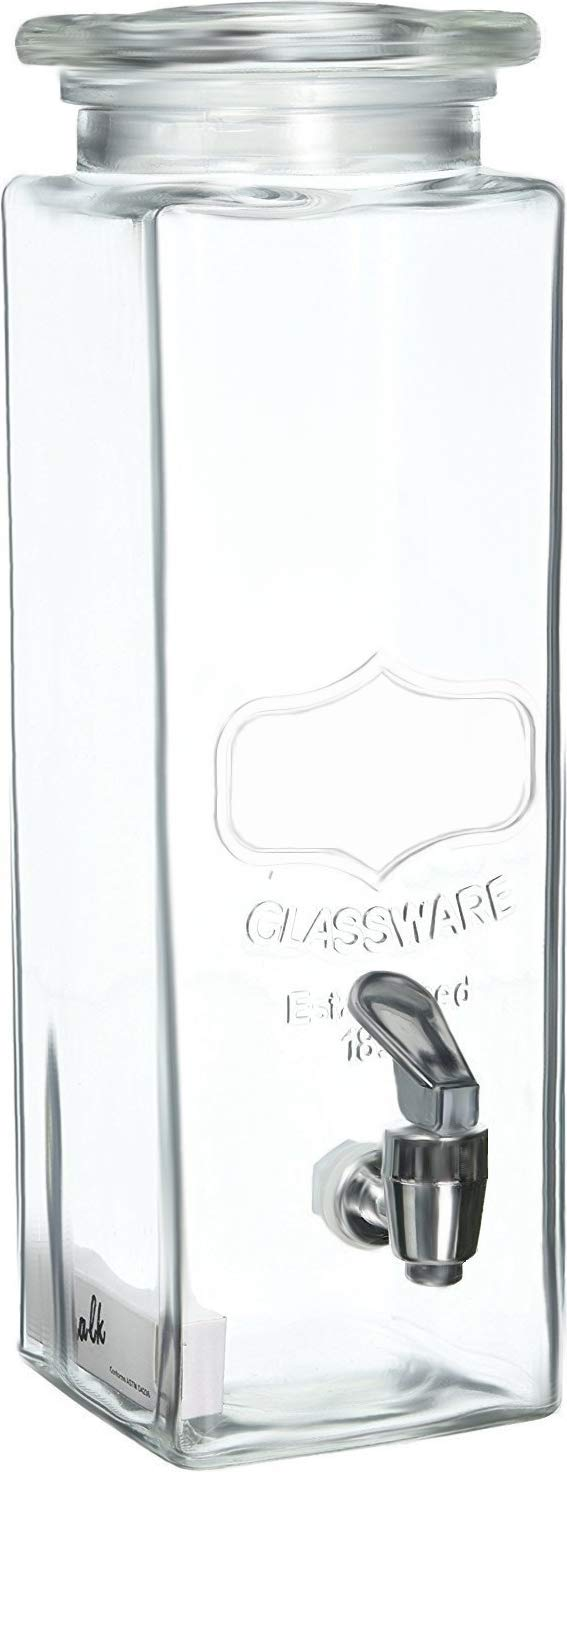 Circleware Tall Square Mason Jar Glass Beverage Dispenser with Lid, Fun Party Entertainment Kitchen Glassware Water Pitcher for, Juice, Beer, Punch, Iced Tea & Cold Drinks, 2.5 Quarts, Yorkshire